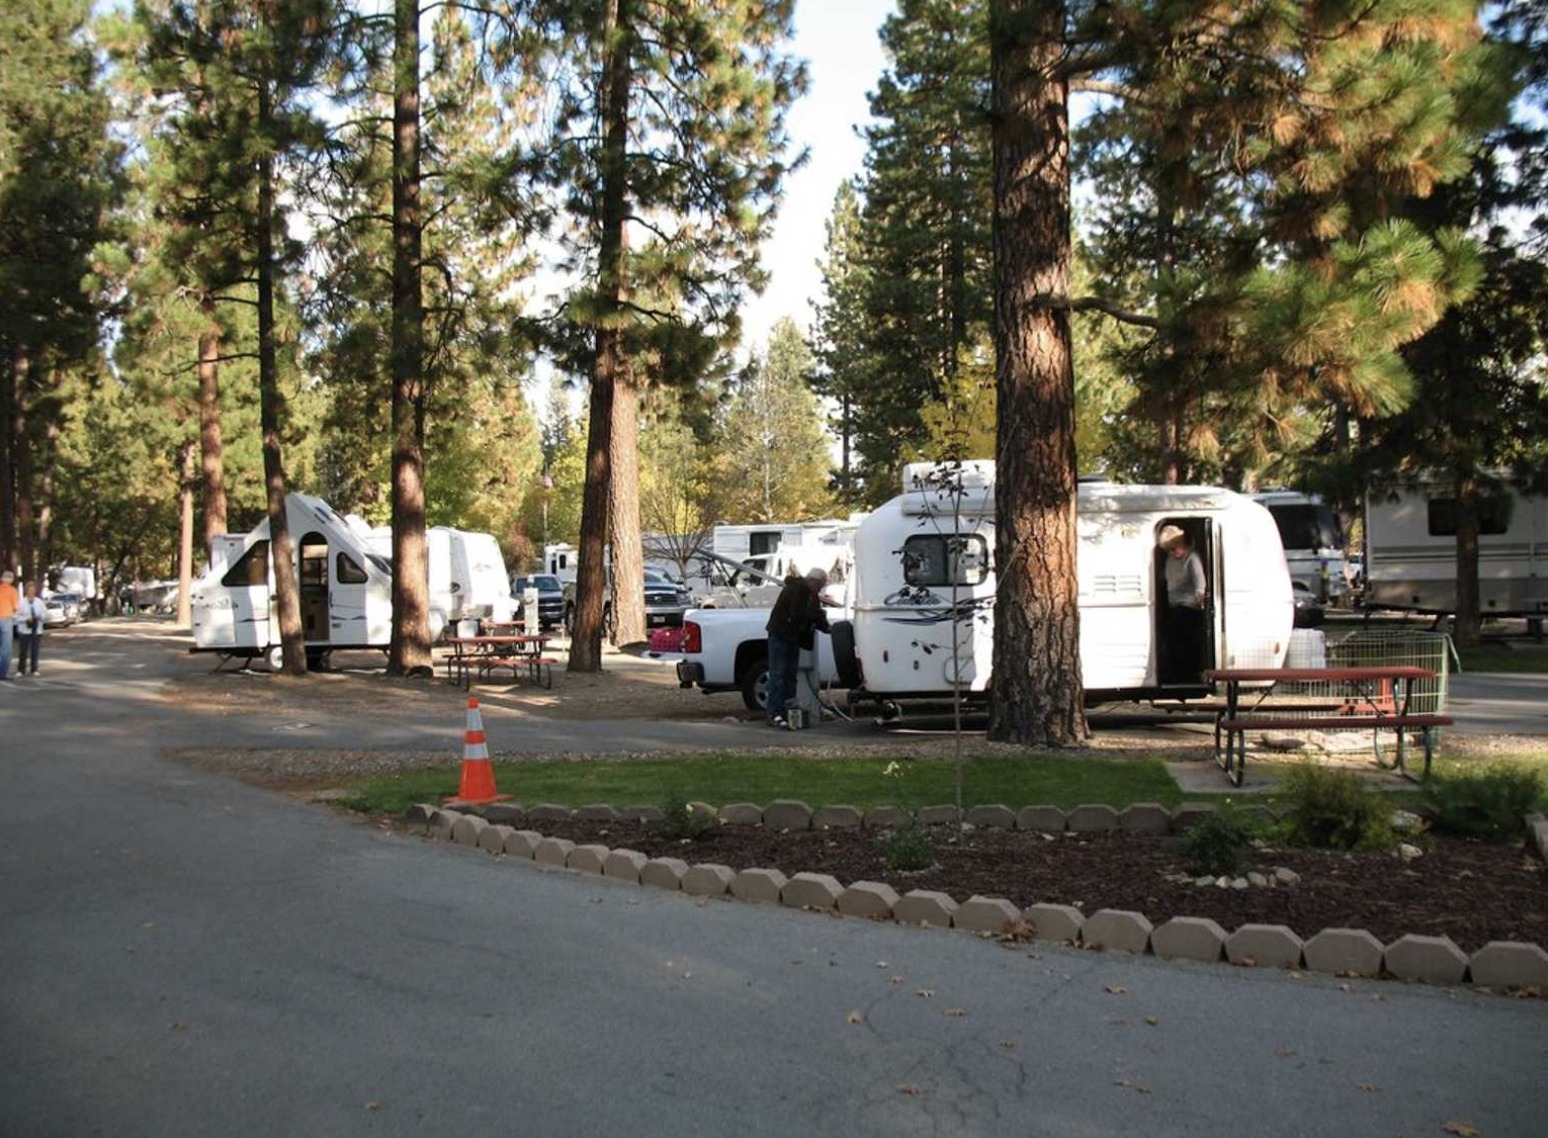 RVs parked next to trees at Pioneer RV campground.